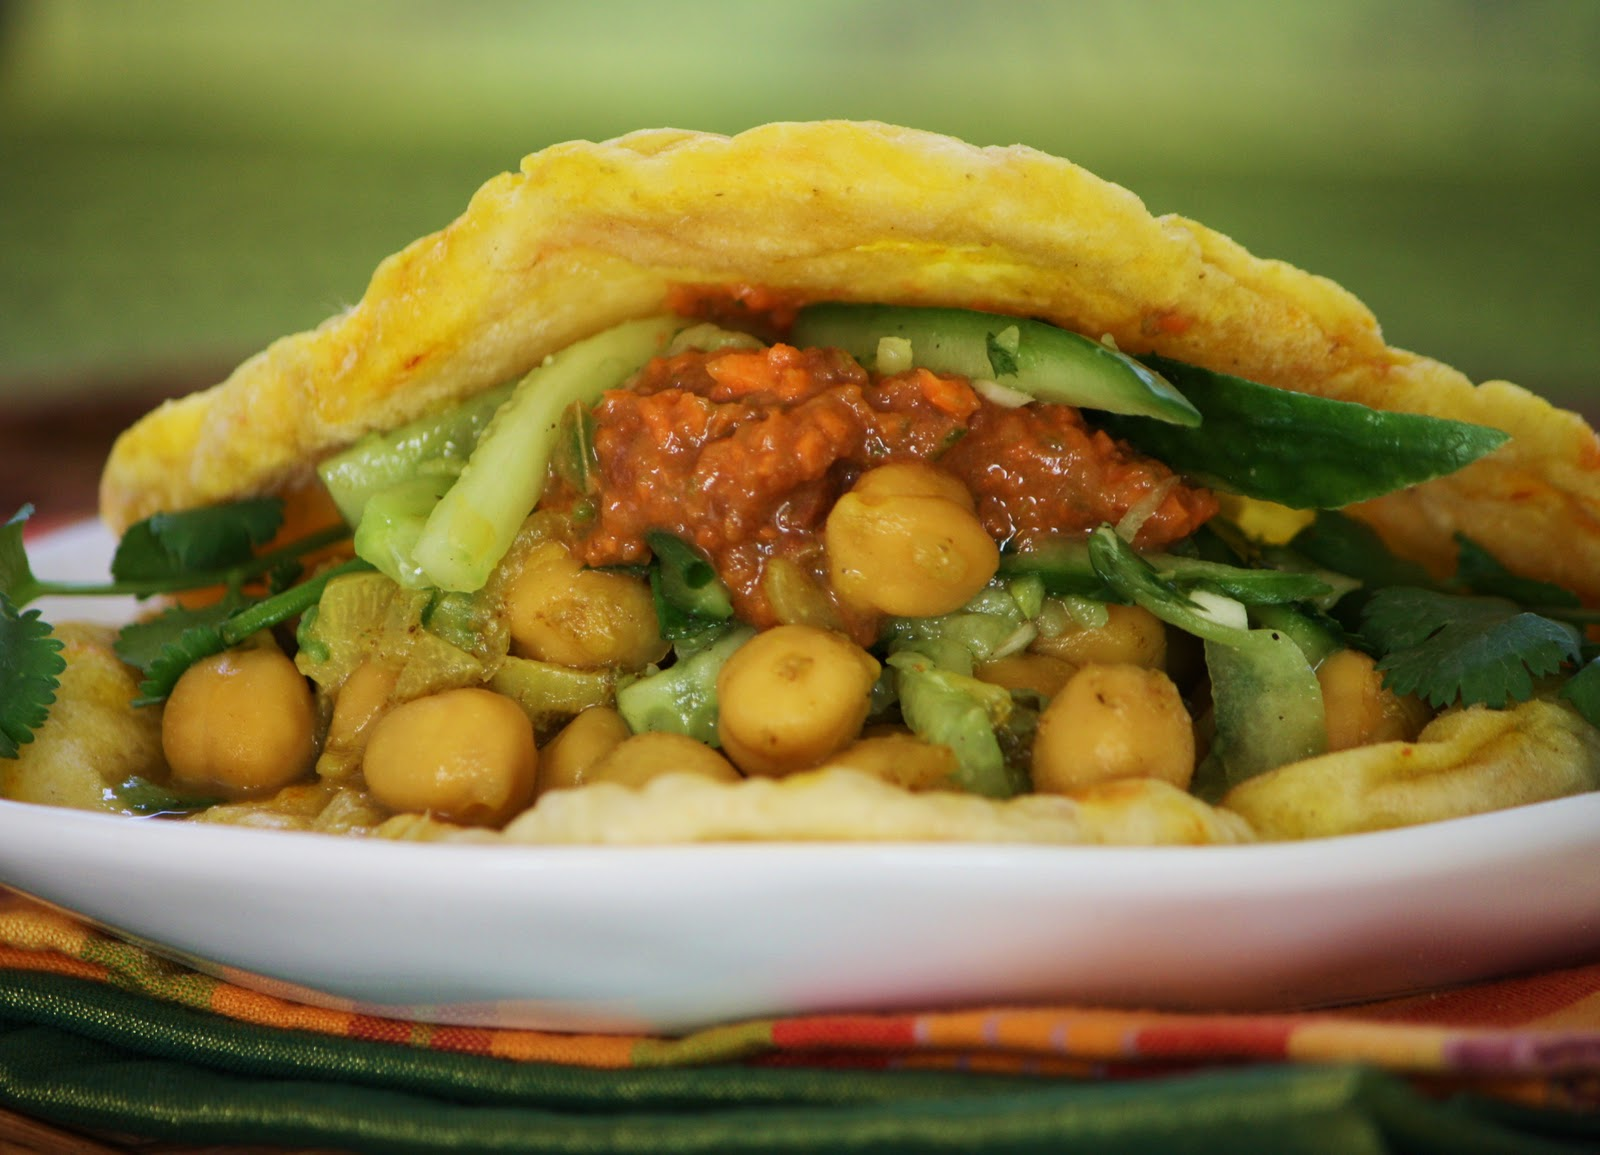 Trinidad is a polyglot culture, and its cuisine blends West African, East Indian, Chinese, French Creole, Spanish, English and Middle Eastern flavors into one spicy mix